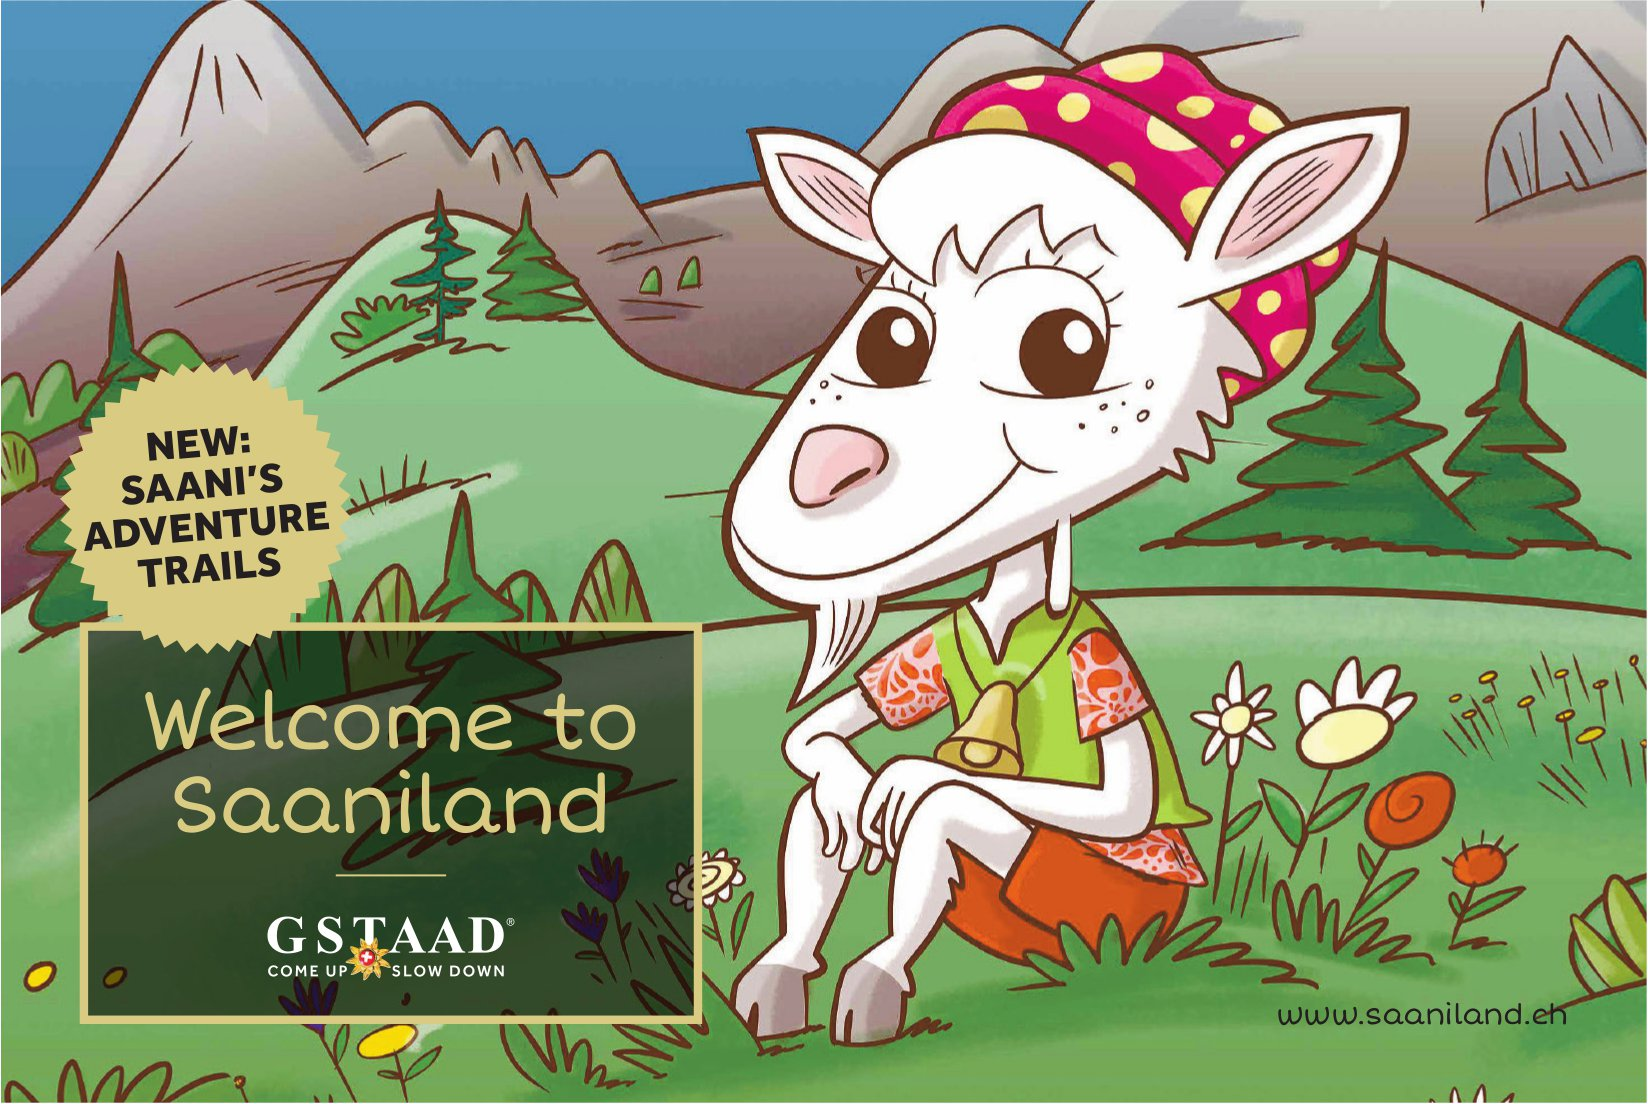 Welcome to Saaniland - Saani's adventure trails